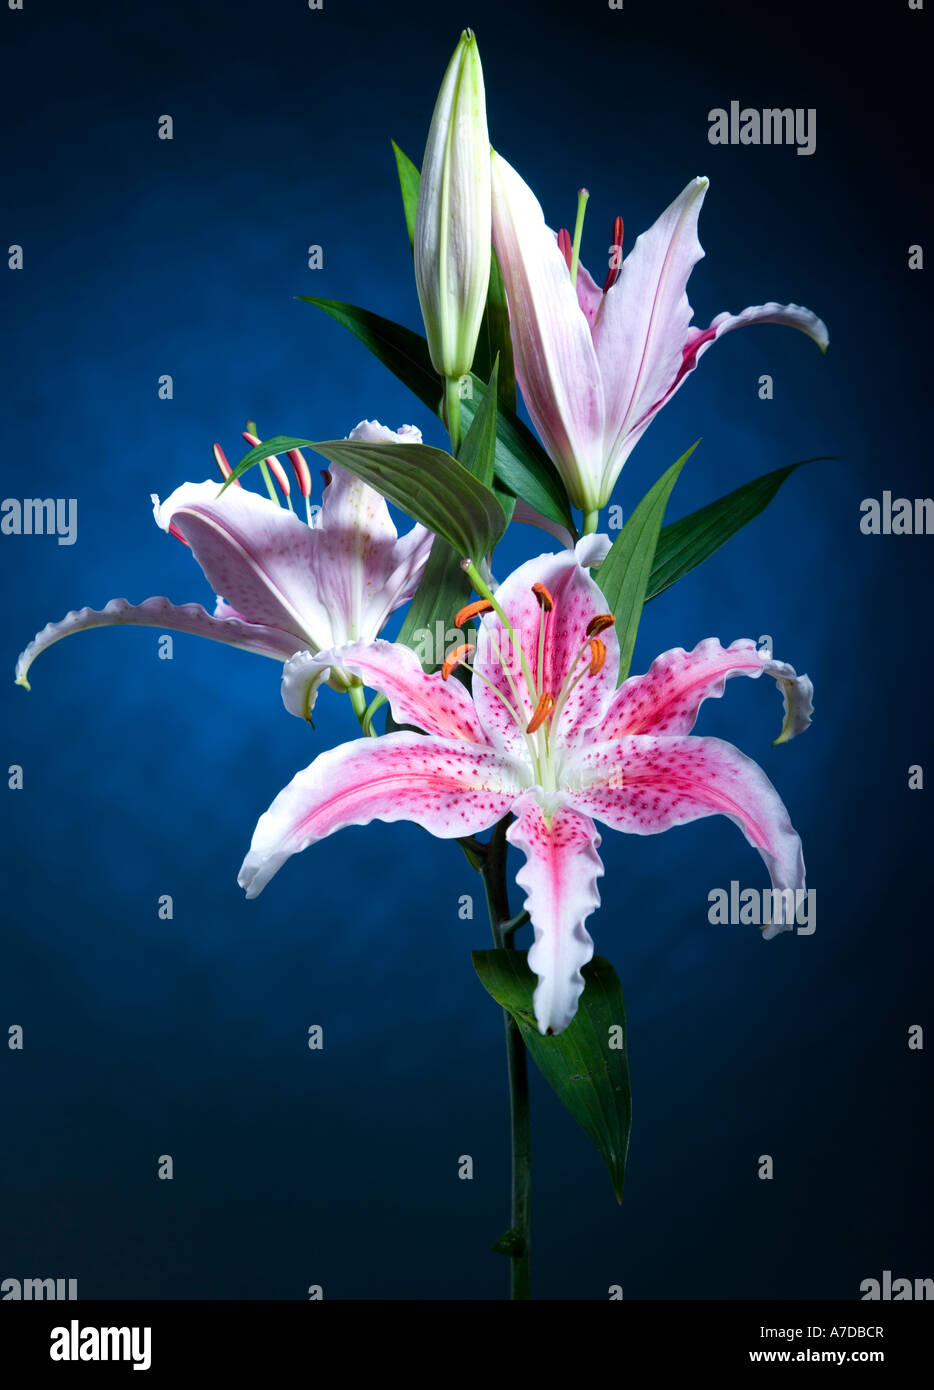 Lilies In Moonlight Stock Photos Lilies In Moonlight Stock Images